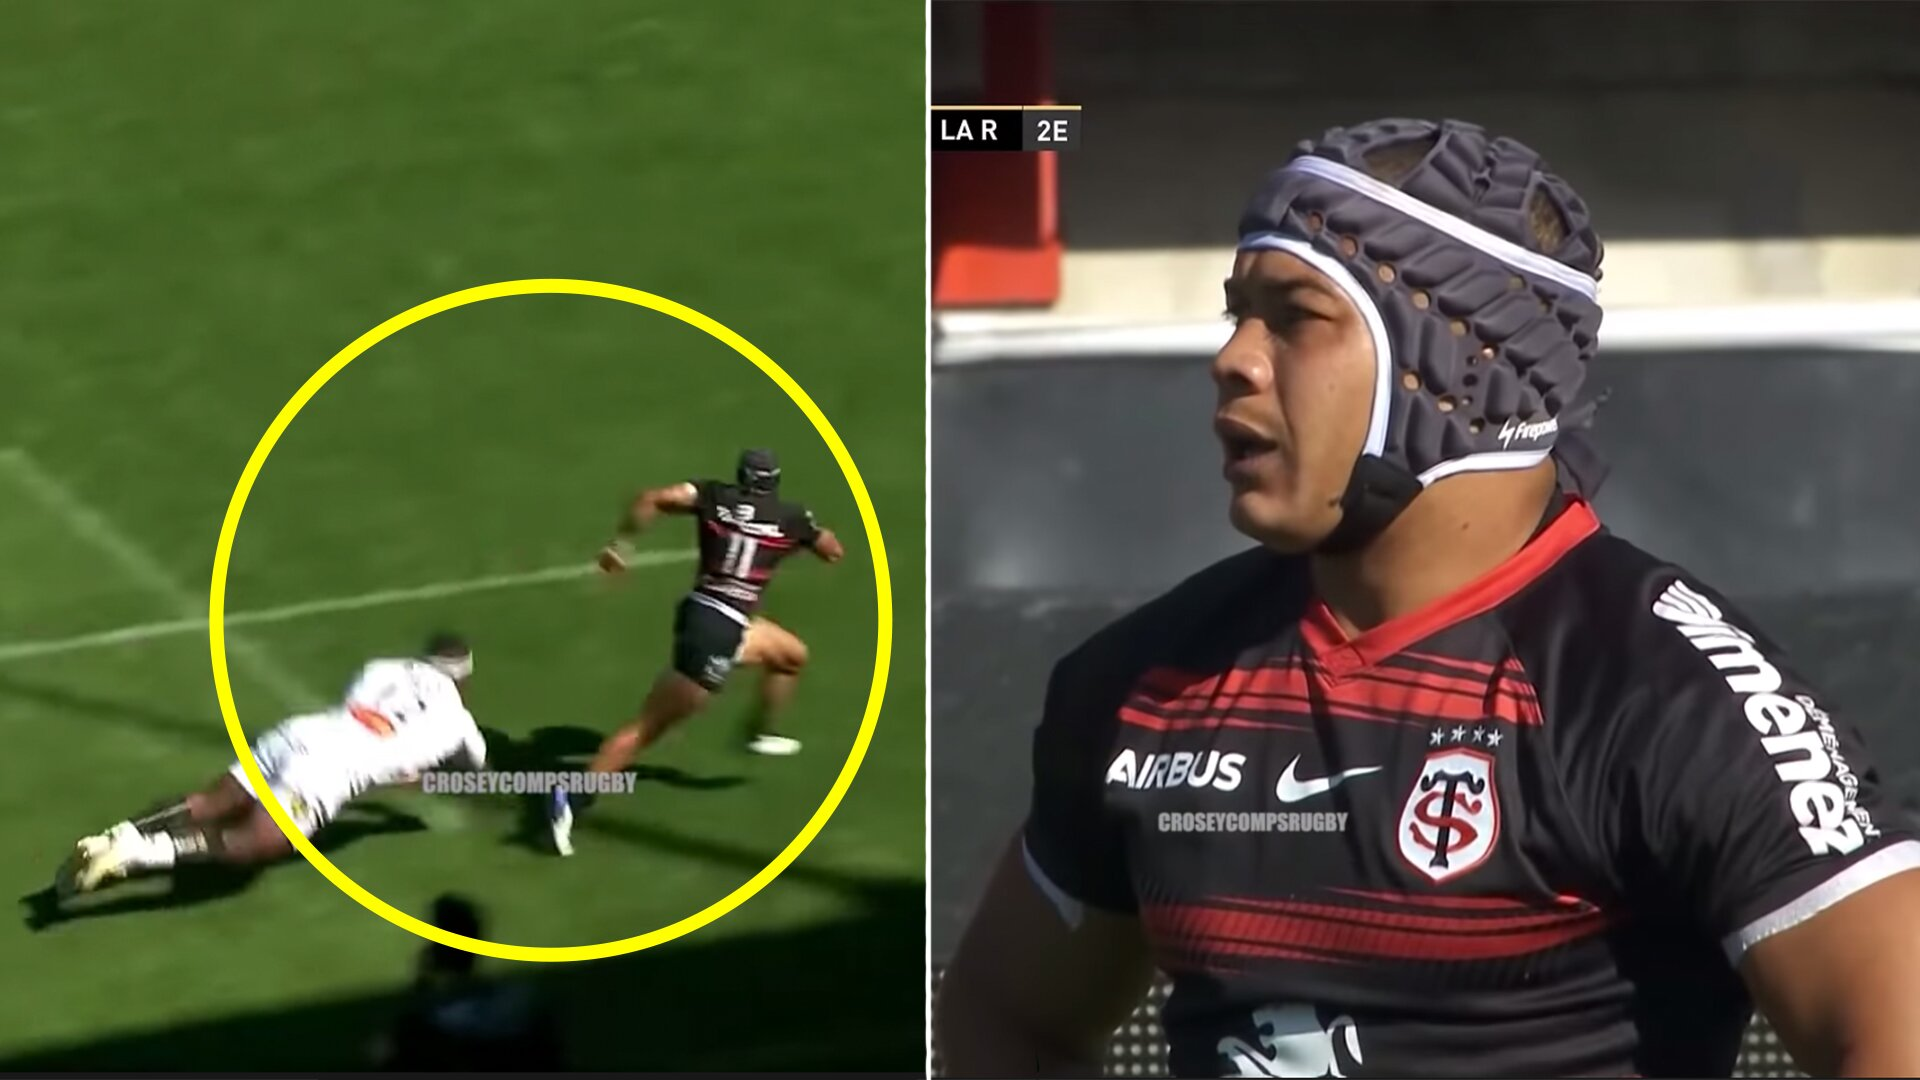 Cheslin Kolbe is literally unplayable as he terrifies opponents for Toulouse